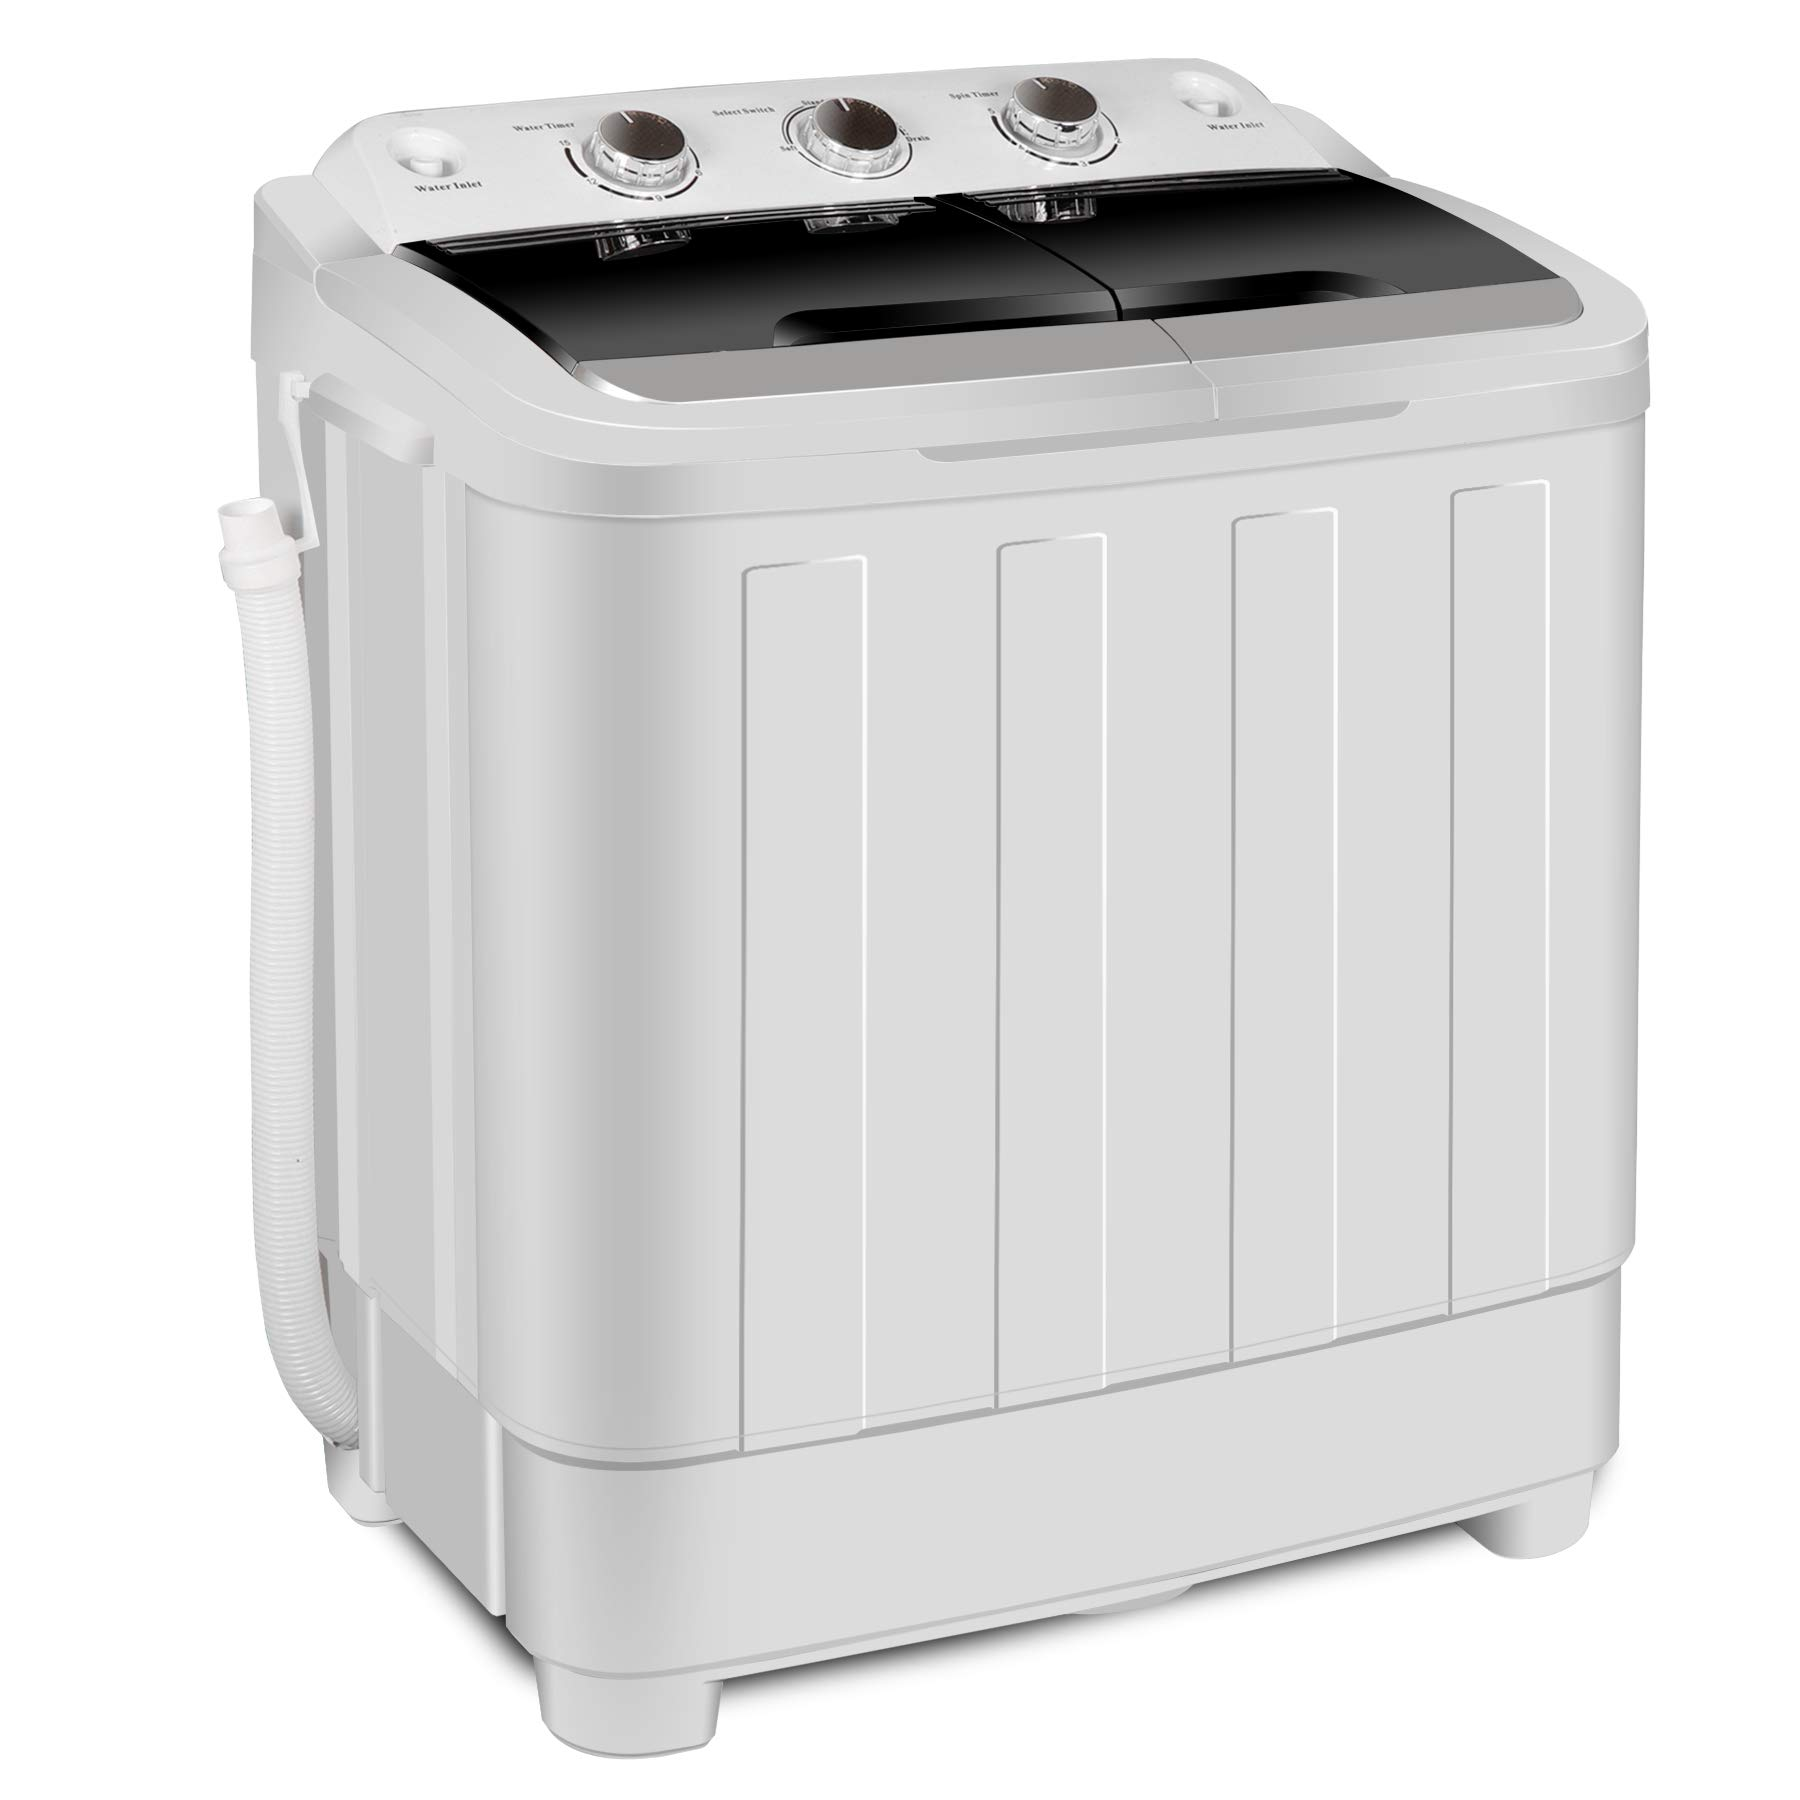 ZENY Portable Mini Compact Twin Tub Washing Machine Washer Spain Spinner 17.6lbs Capacity